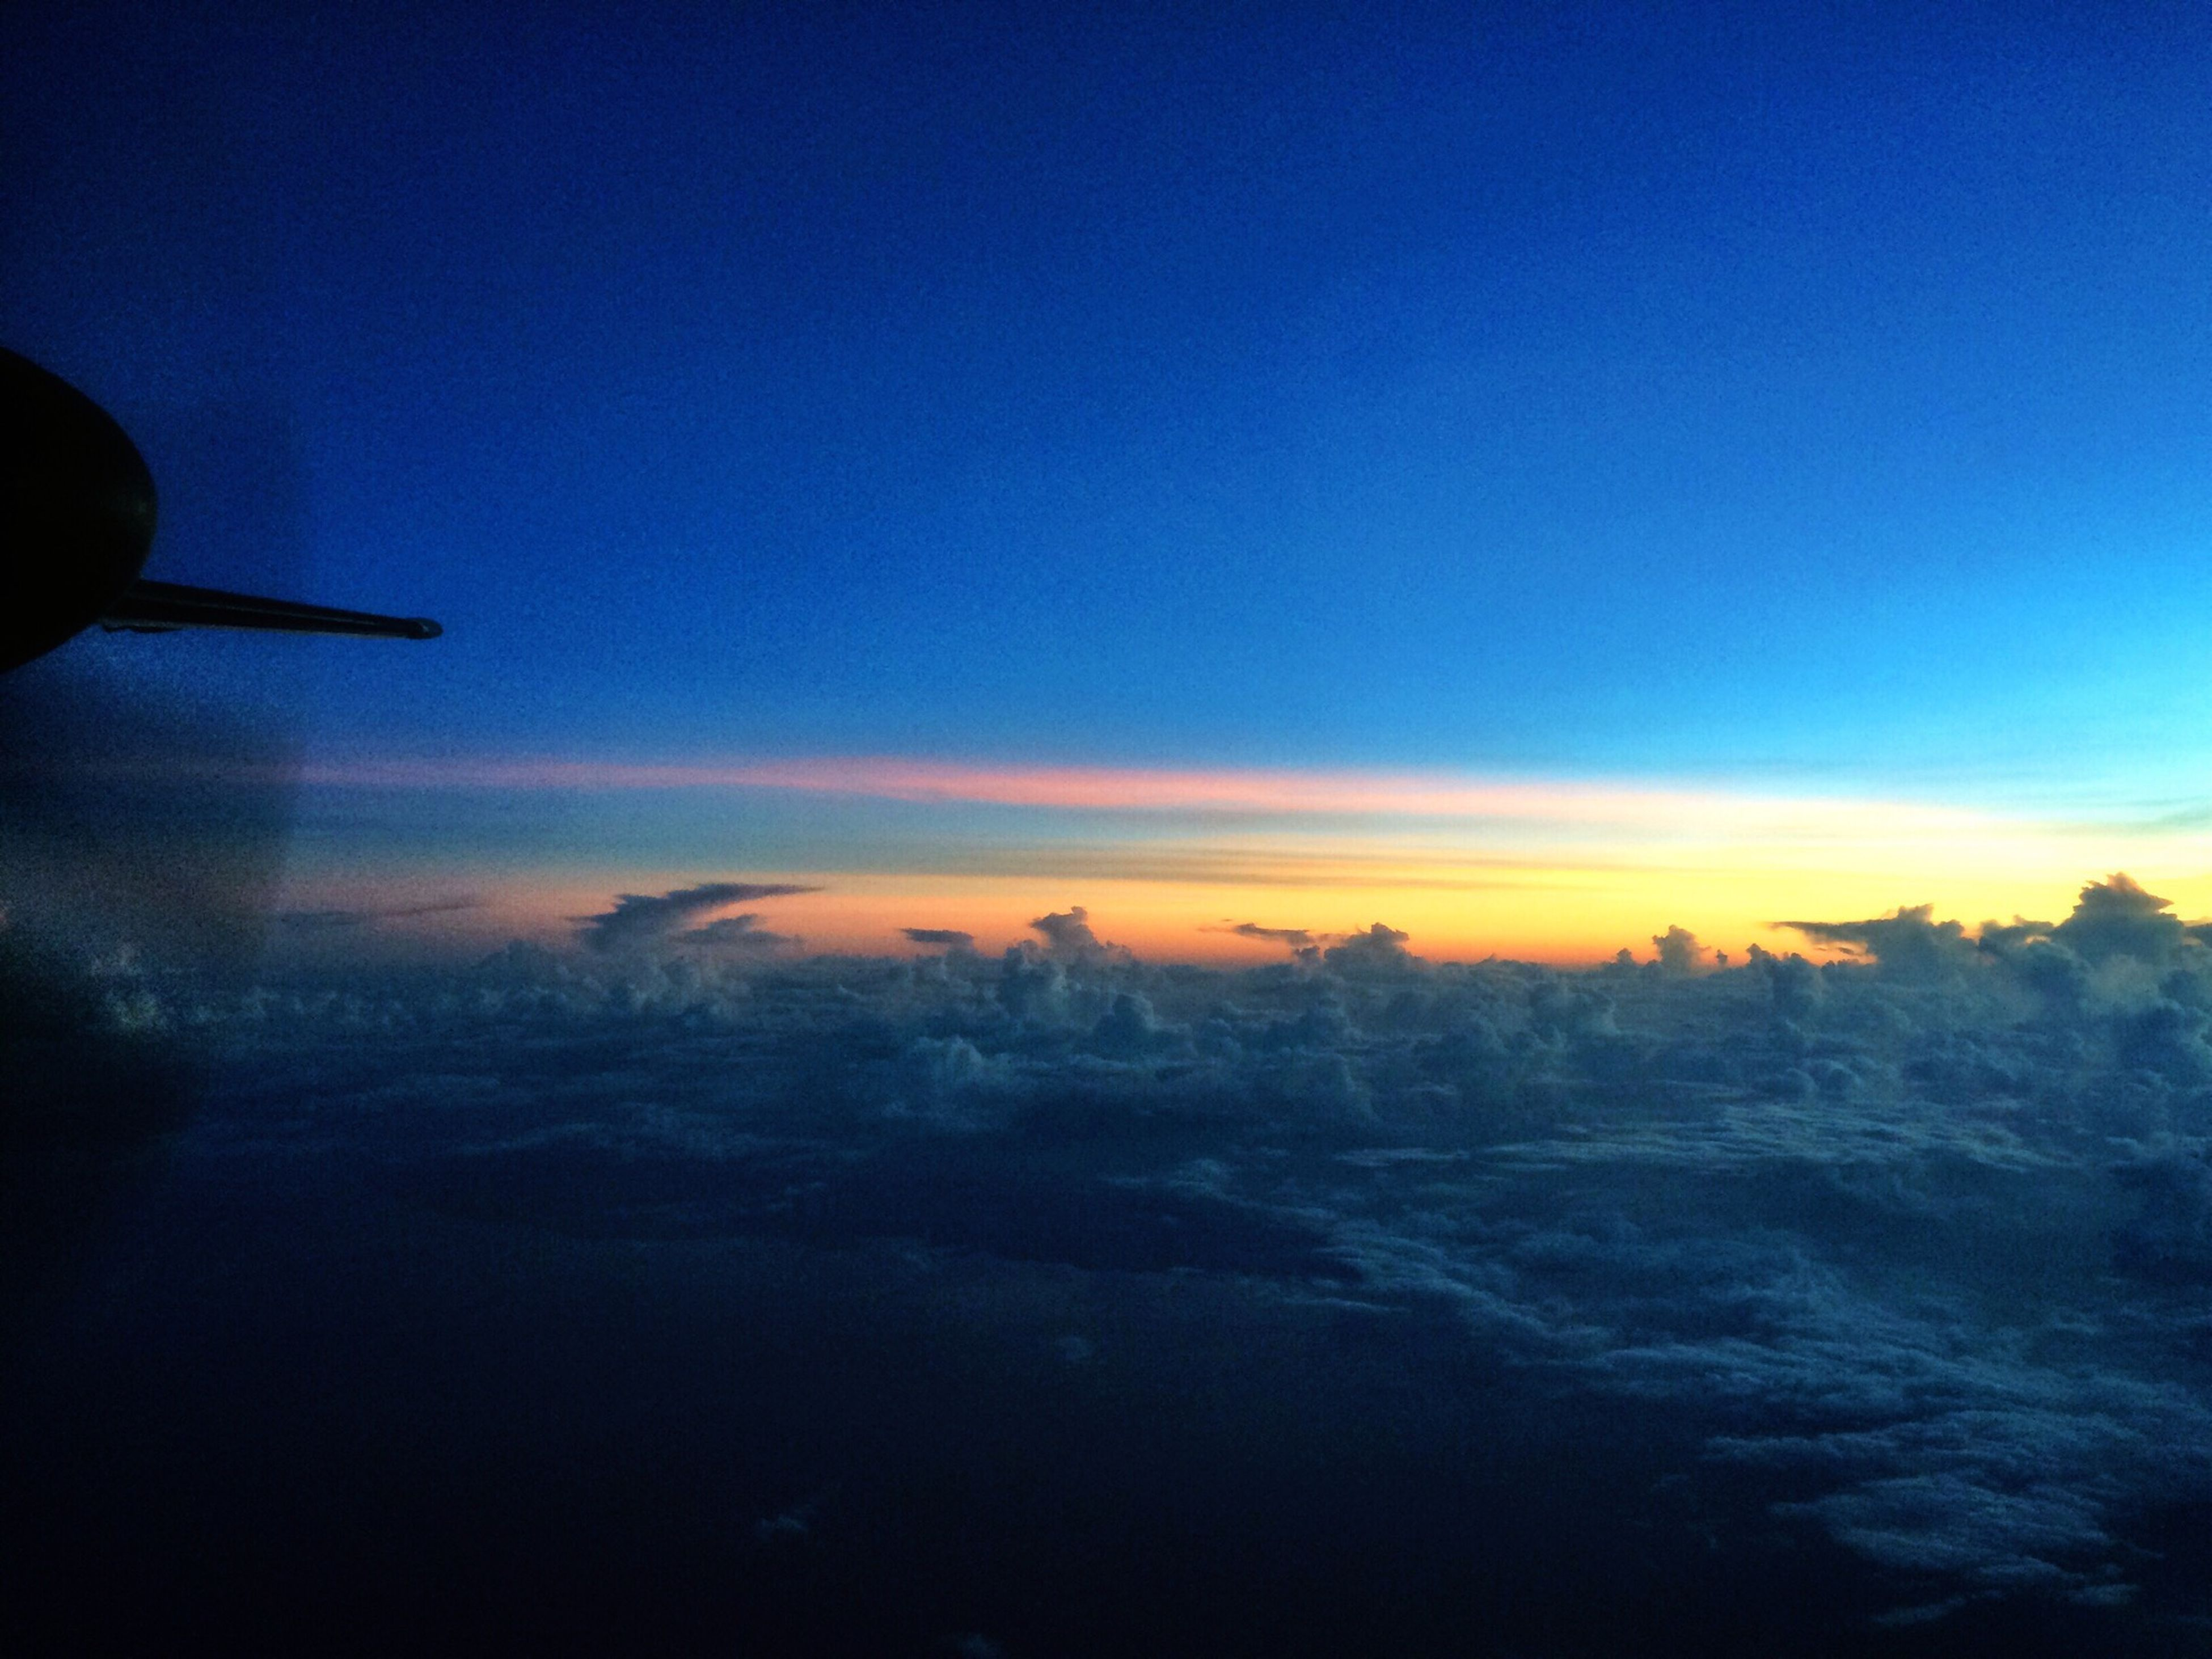 sunset, scenics, beauty in nature, blue, sky, tranquil scene, copy space, tranquility, nature, landscape, dusk, orange color, idyllic, airplane, cloud - sky, transportation, weather, air vehicle, mountain, winter